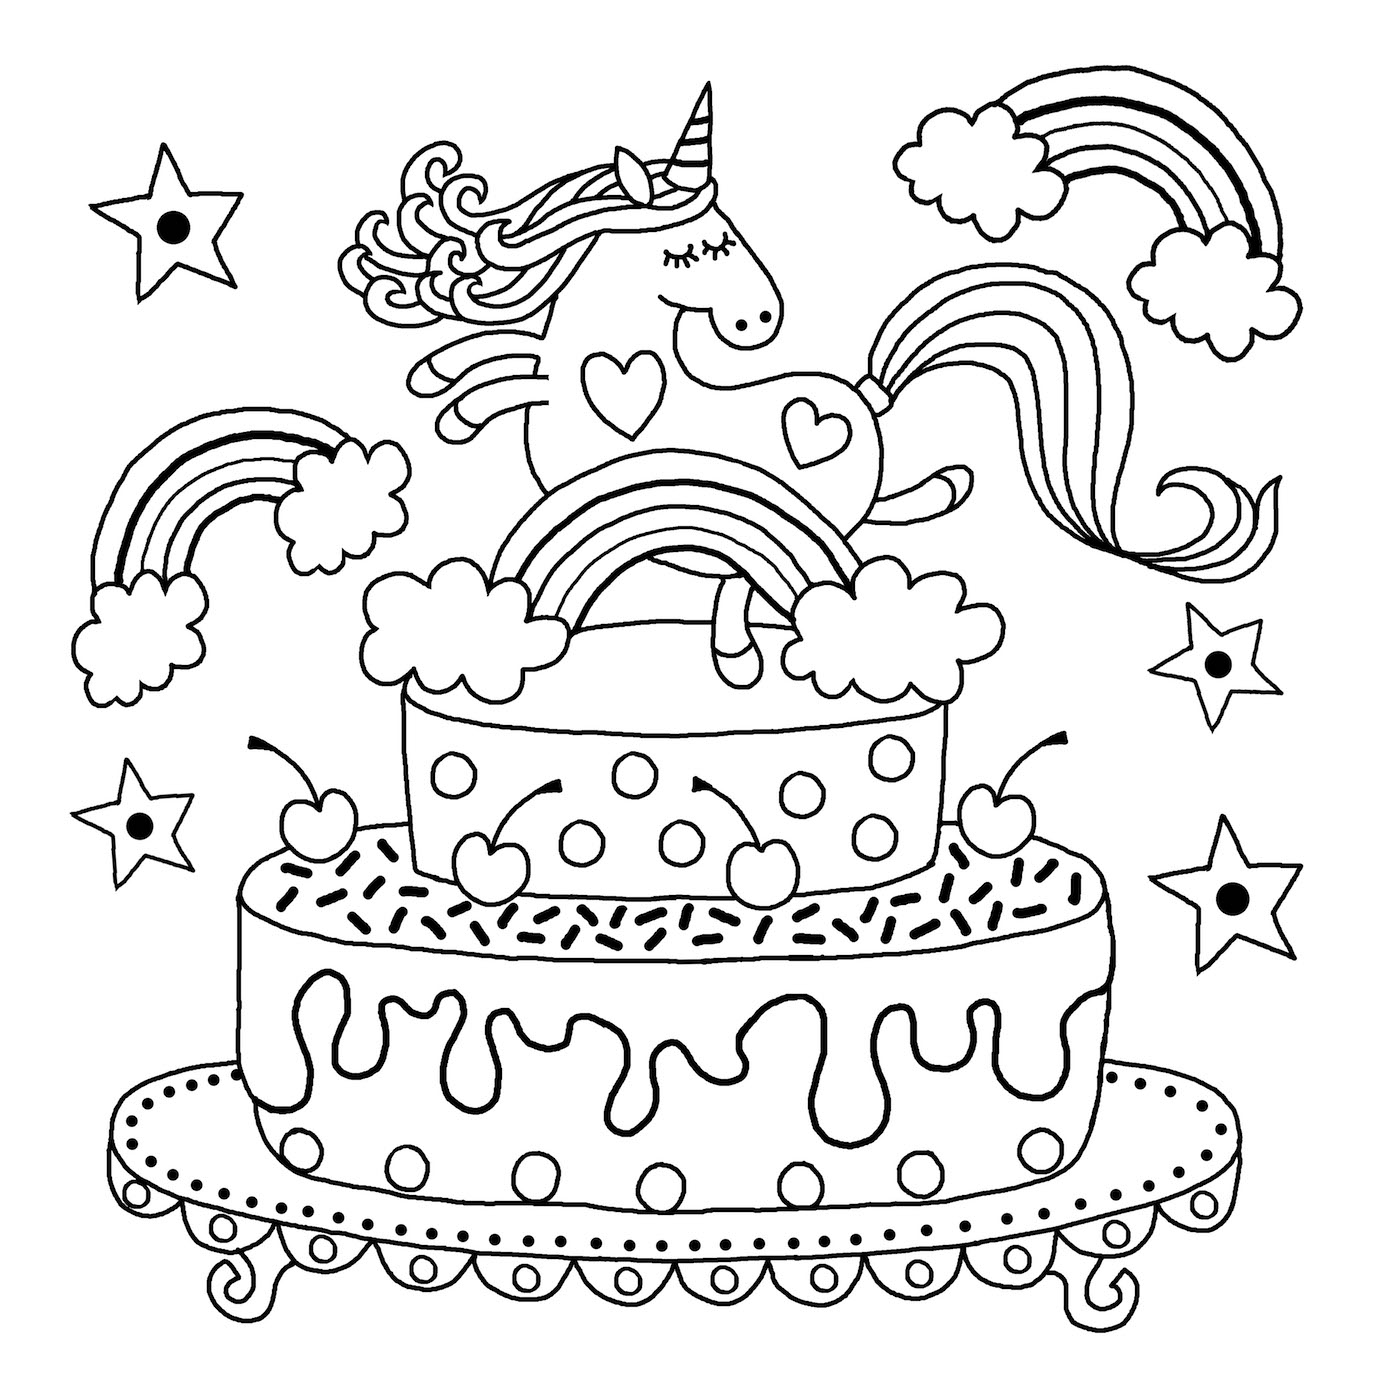 Playful image with regard to printable unicorn colouring pages